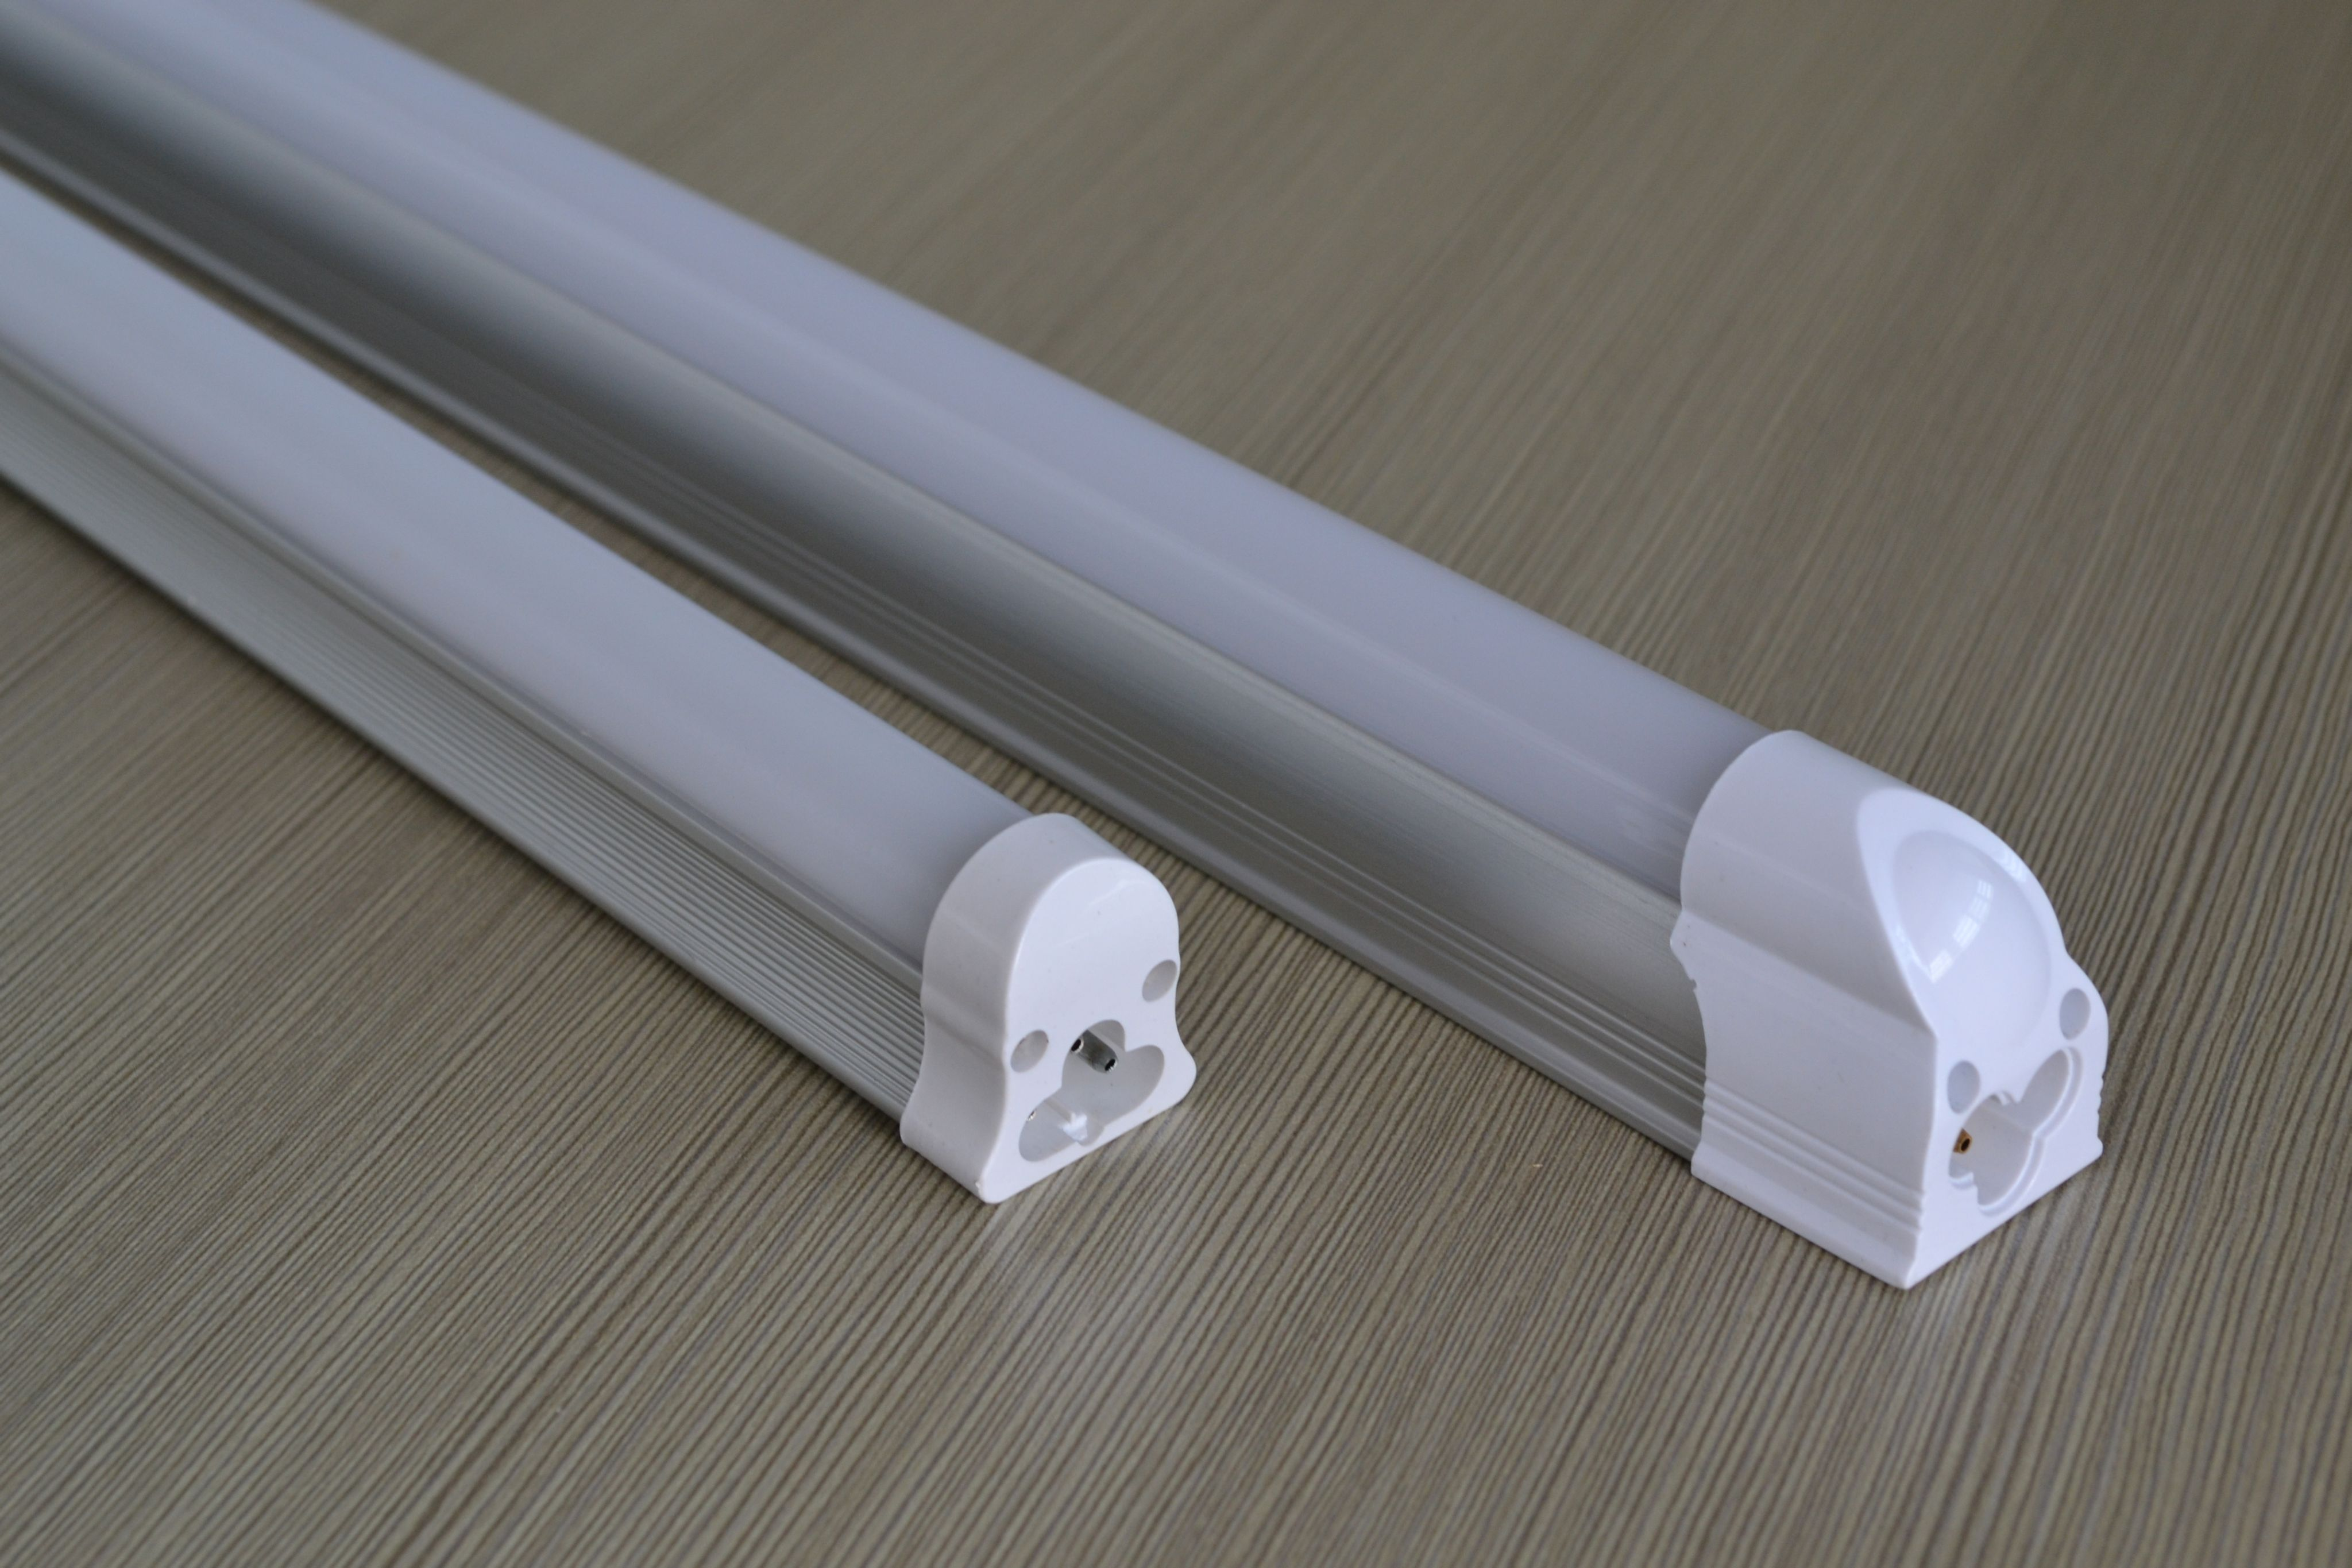 Philip led tube master ledtube em mains t8 led tubes for Hometown furniture ghaziabad